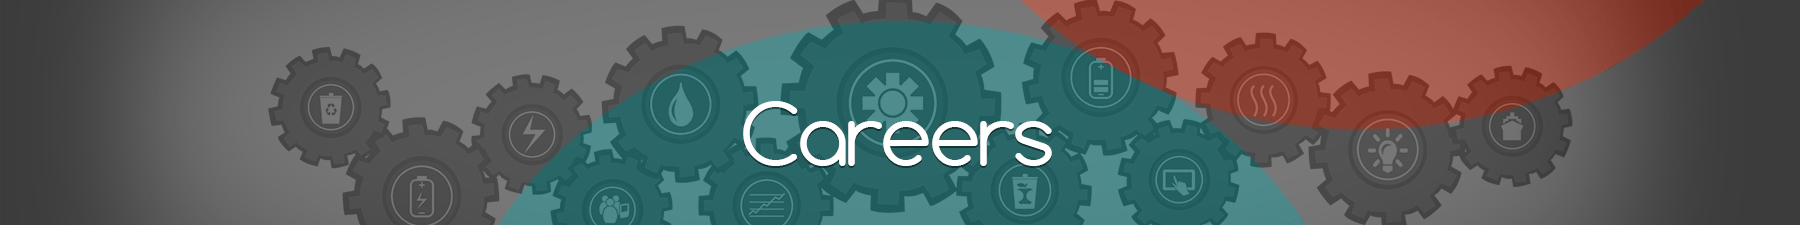 Careers_april-16